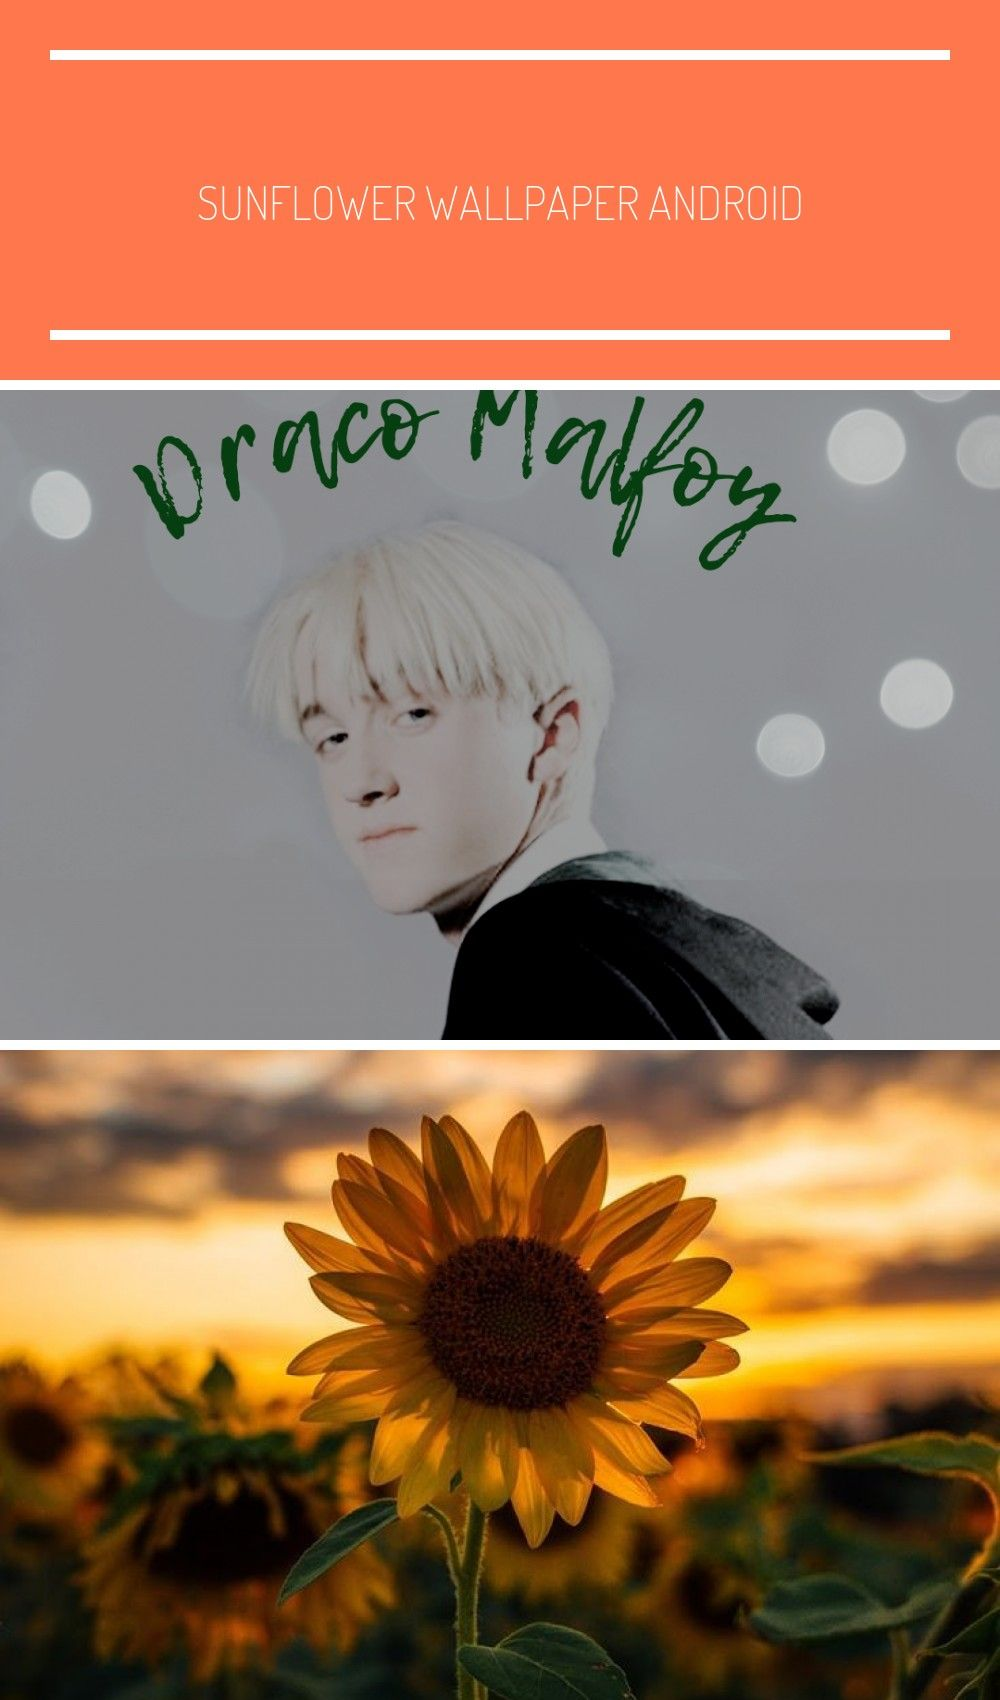 Draco Malfoy Wallpapers Tumblr Sunflower Wallpaper Wallpaper Draco Malfoy